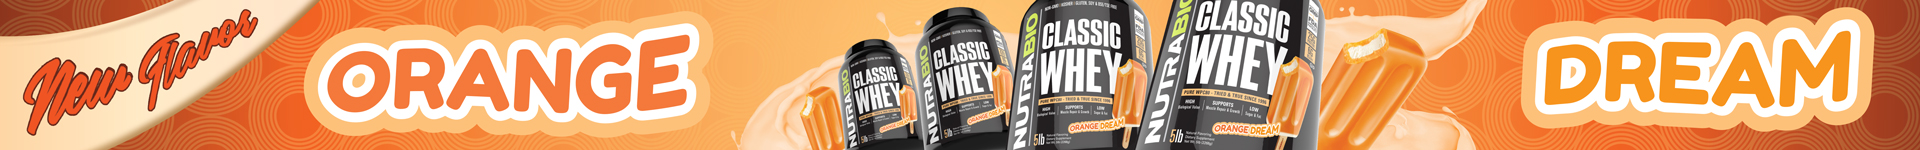 New! Classic Whey Orange Dream!